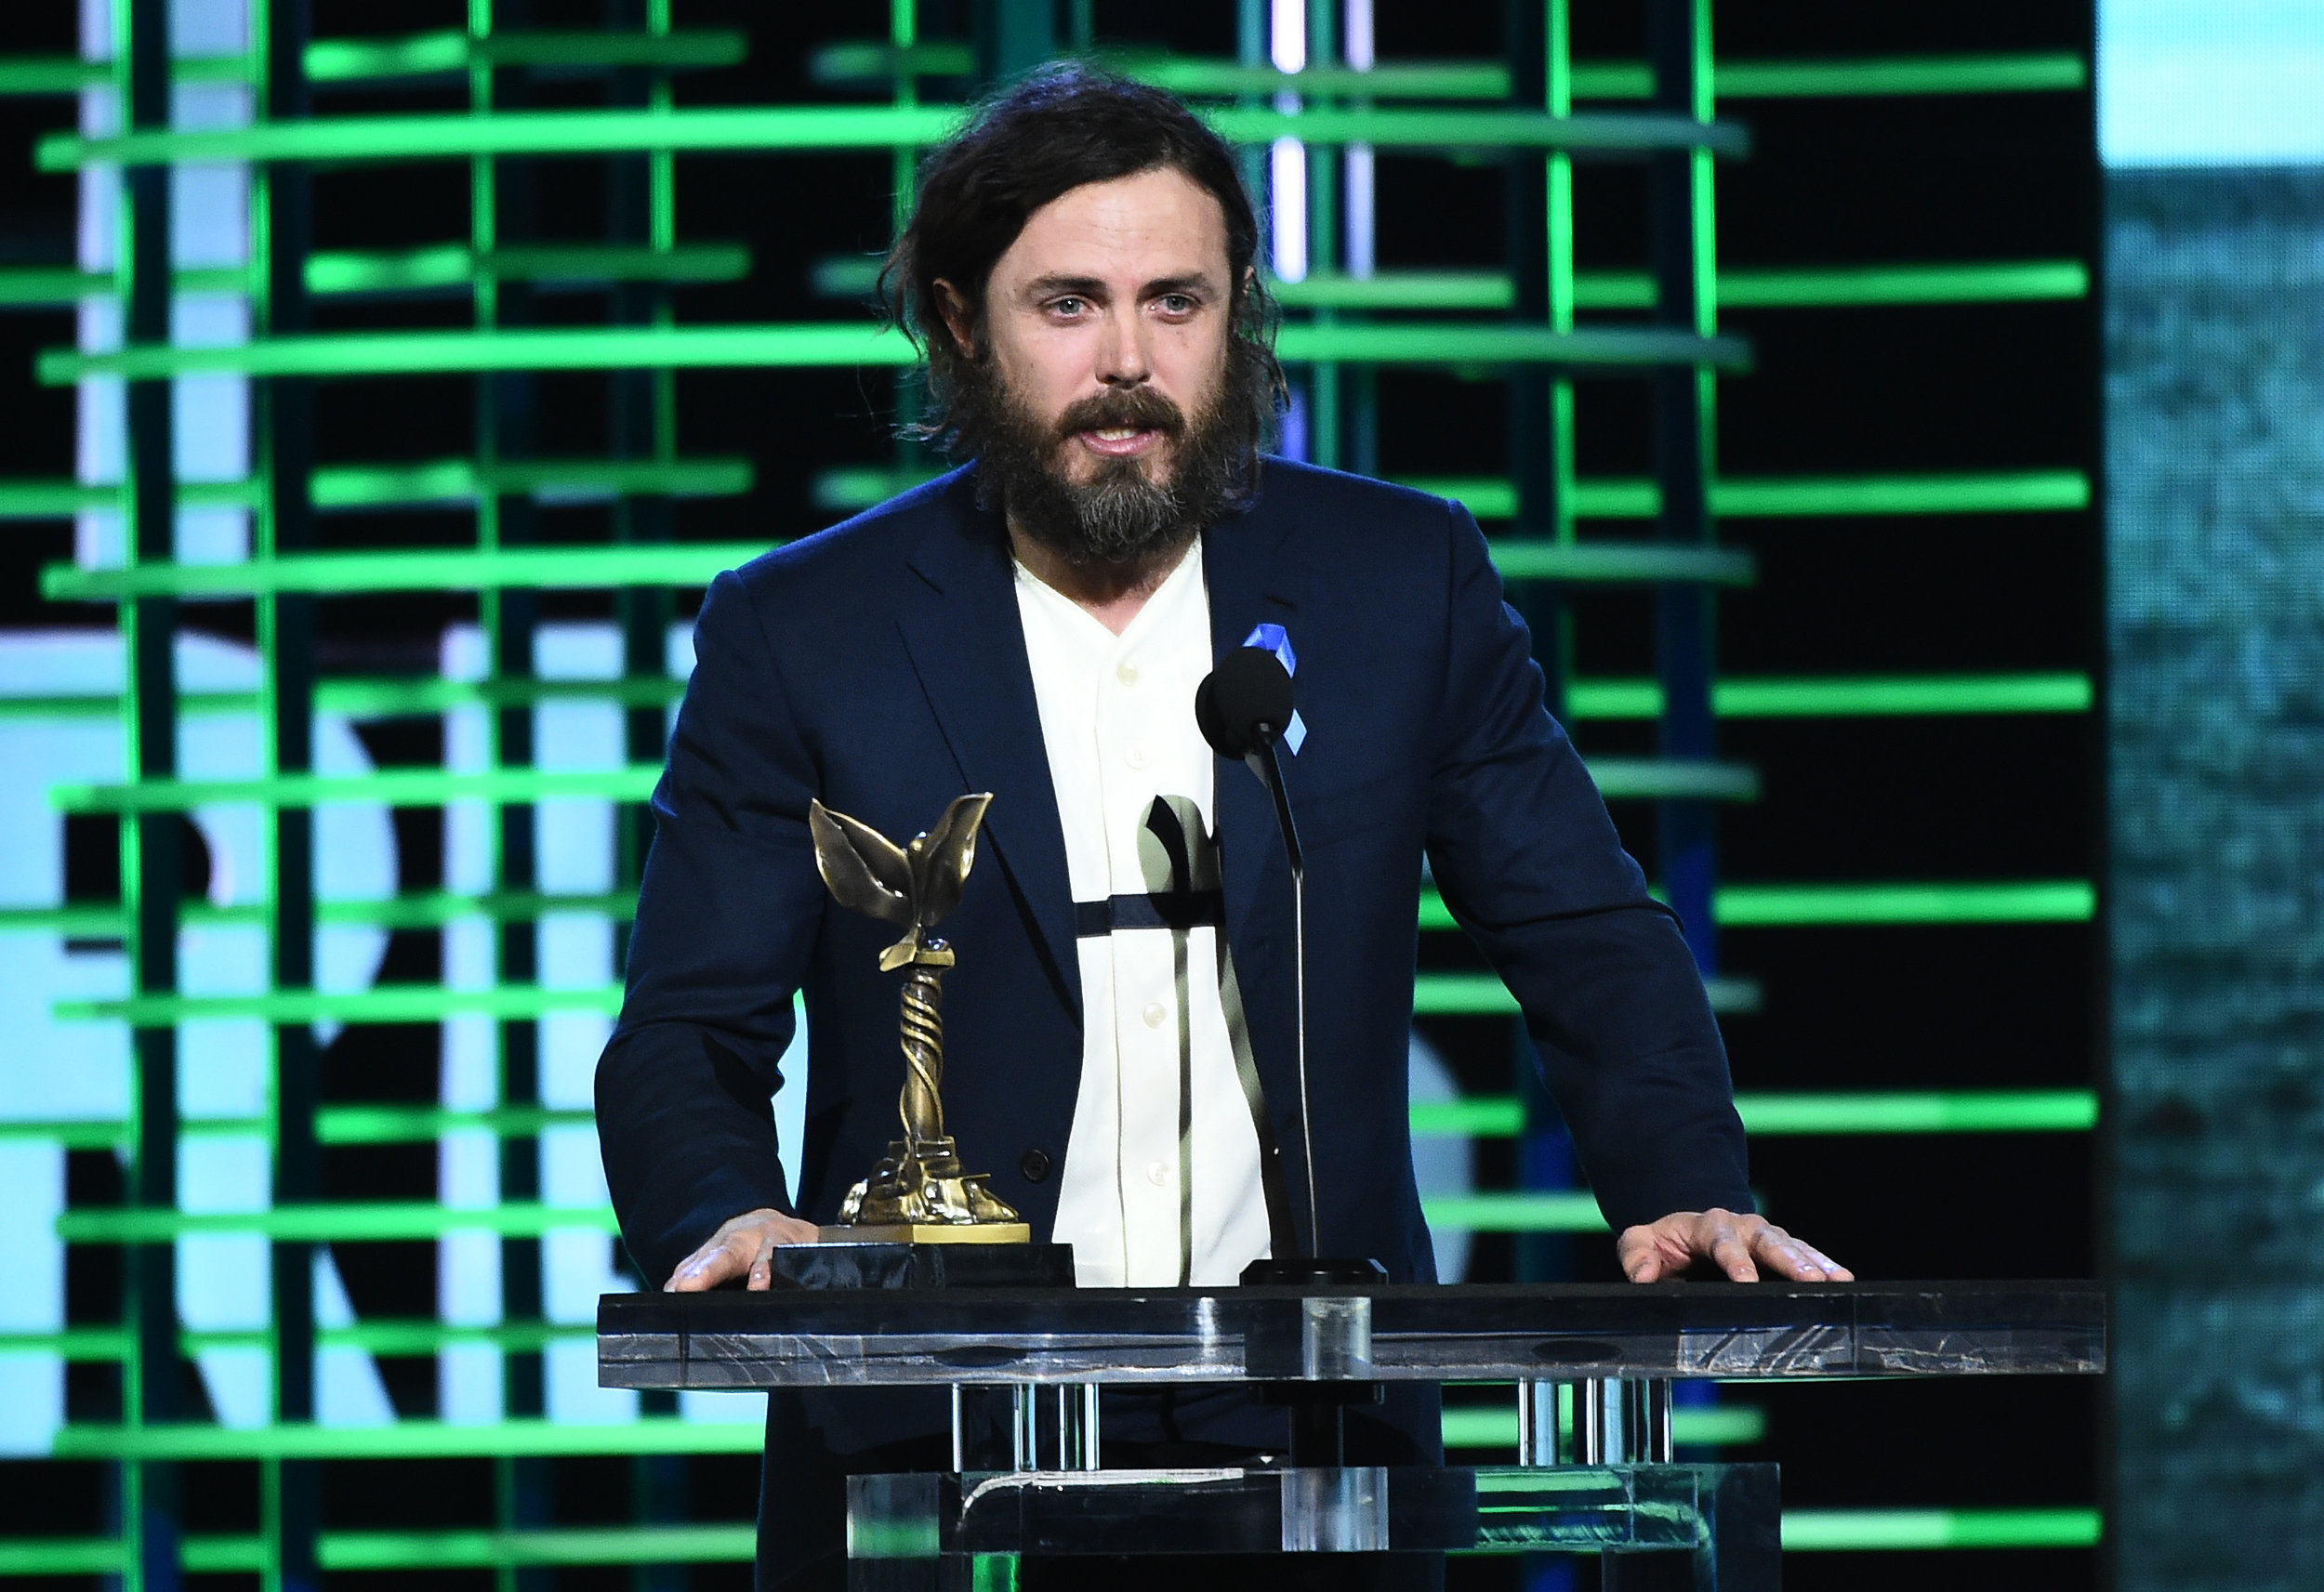 Casey Affleck got political at the podium- preview for tomorrow night?